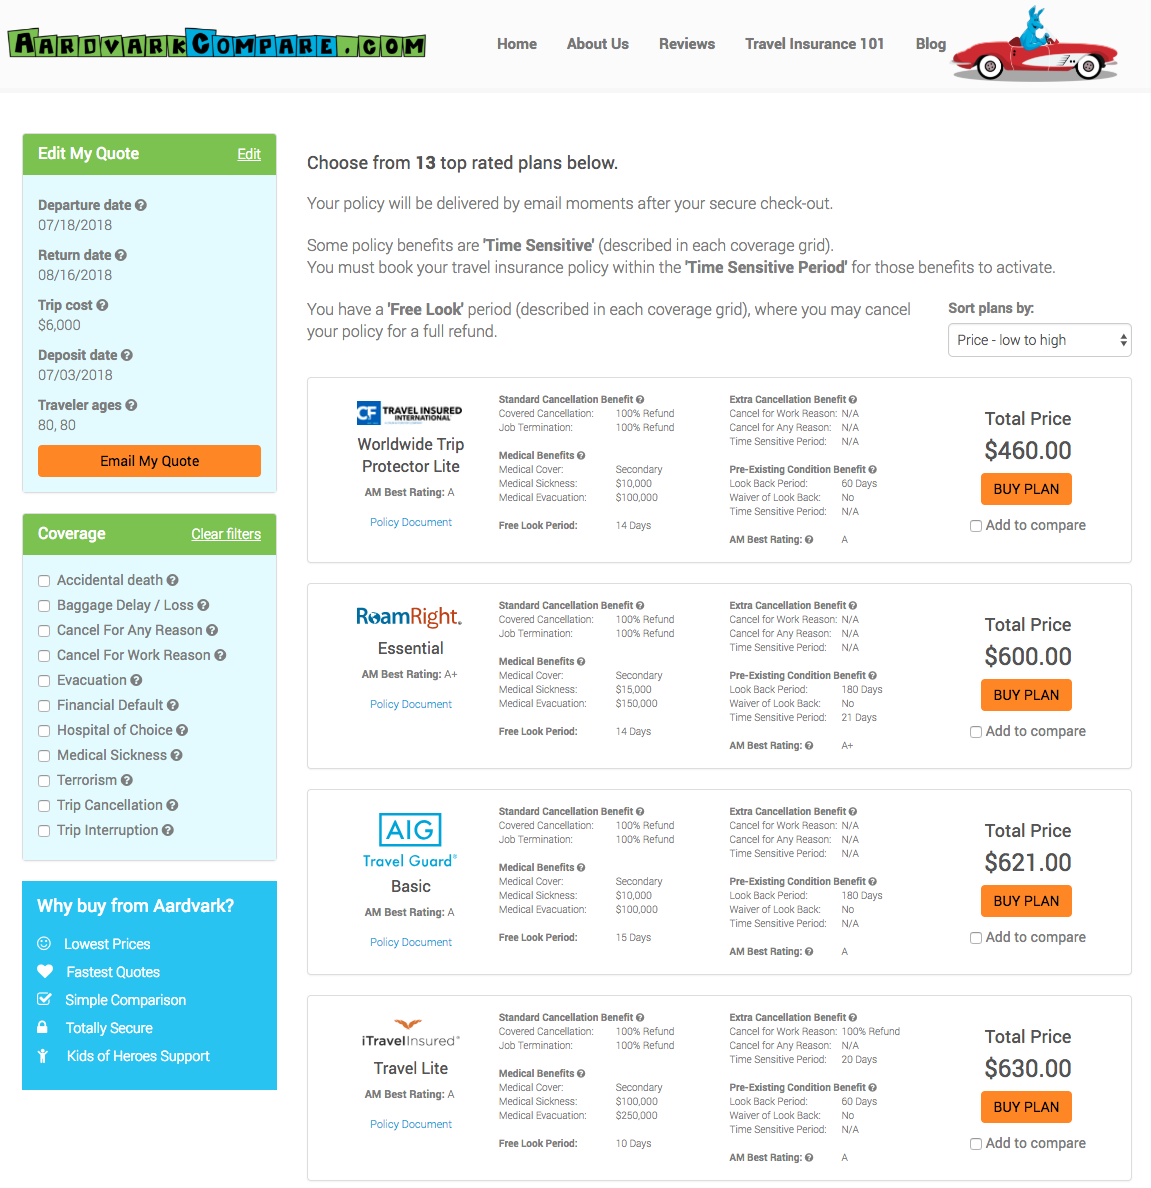 Cost-of-Travel-Insurance-Ages-of-Travelers-80 | AardvarkCompare.com